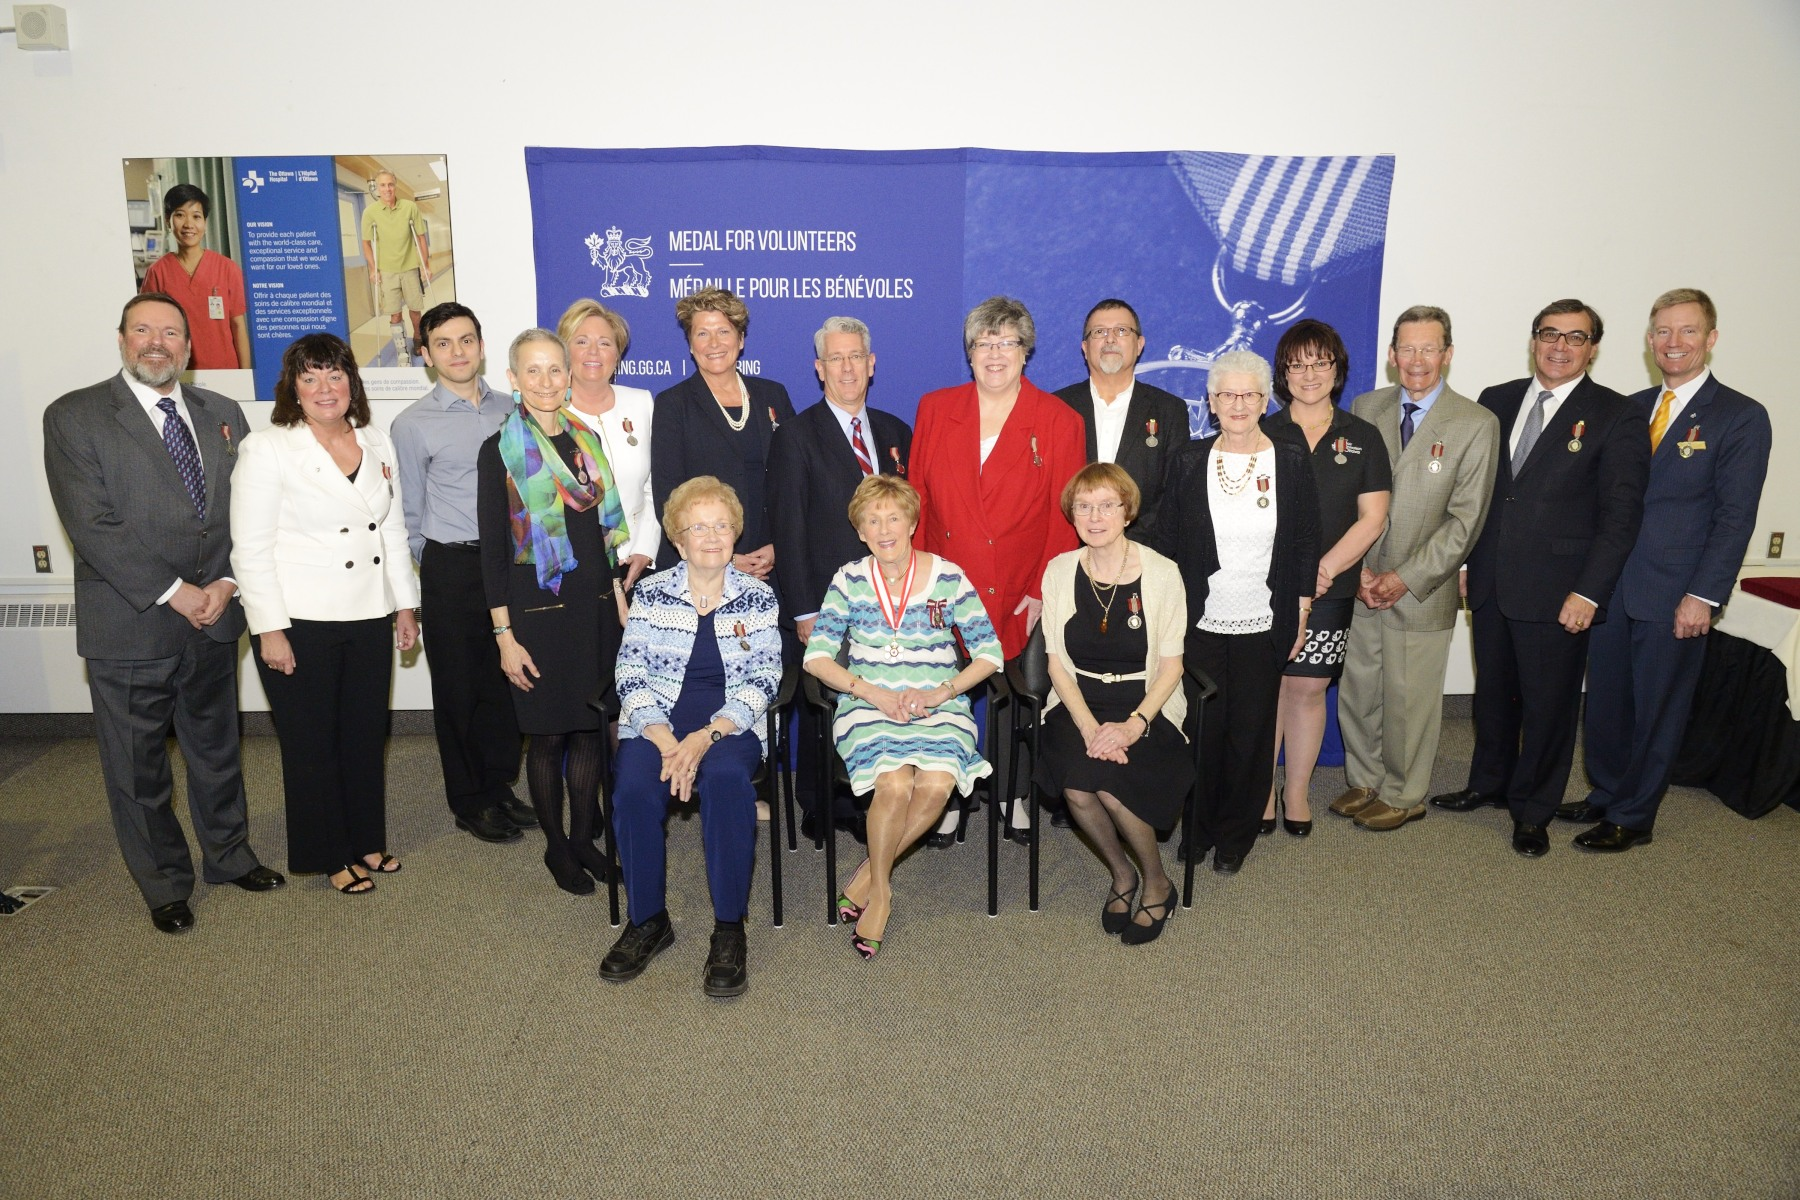 Her Excellency is accompanied by the 16 recipients who were recognized for their work.